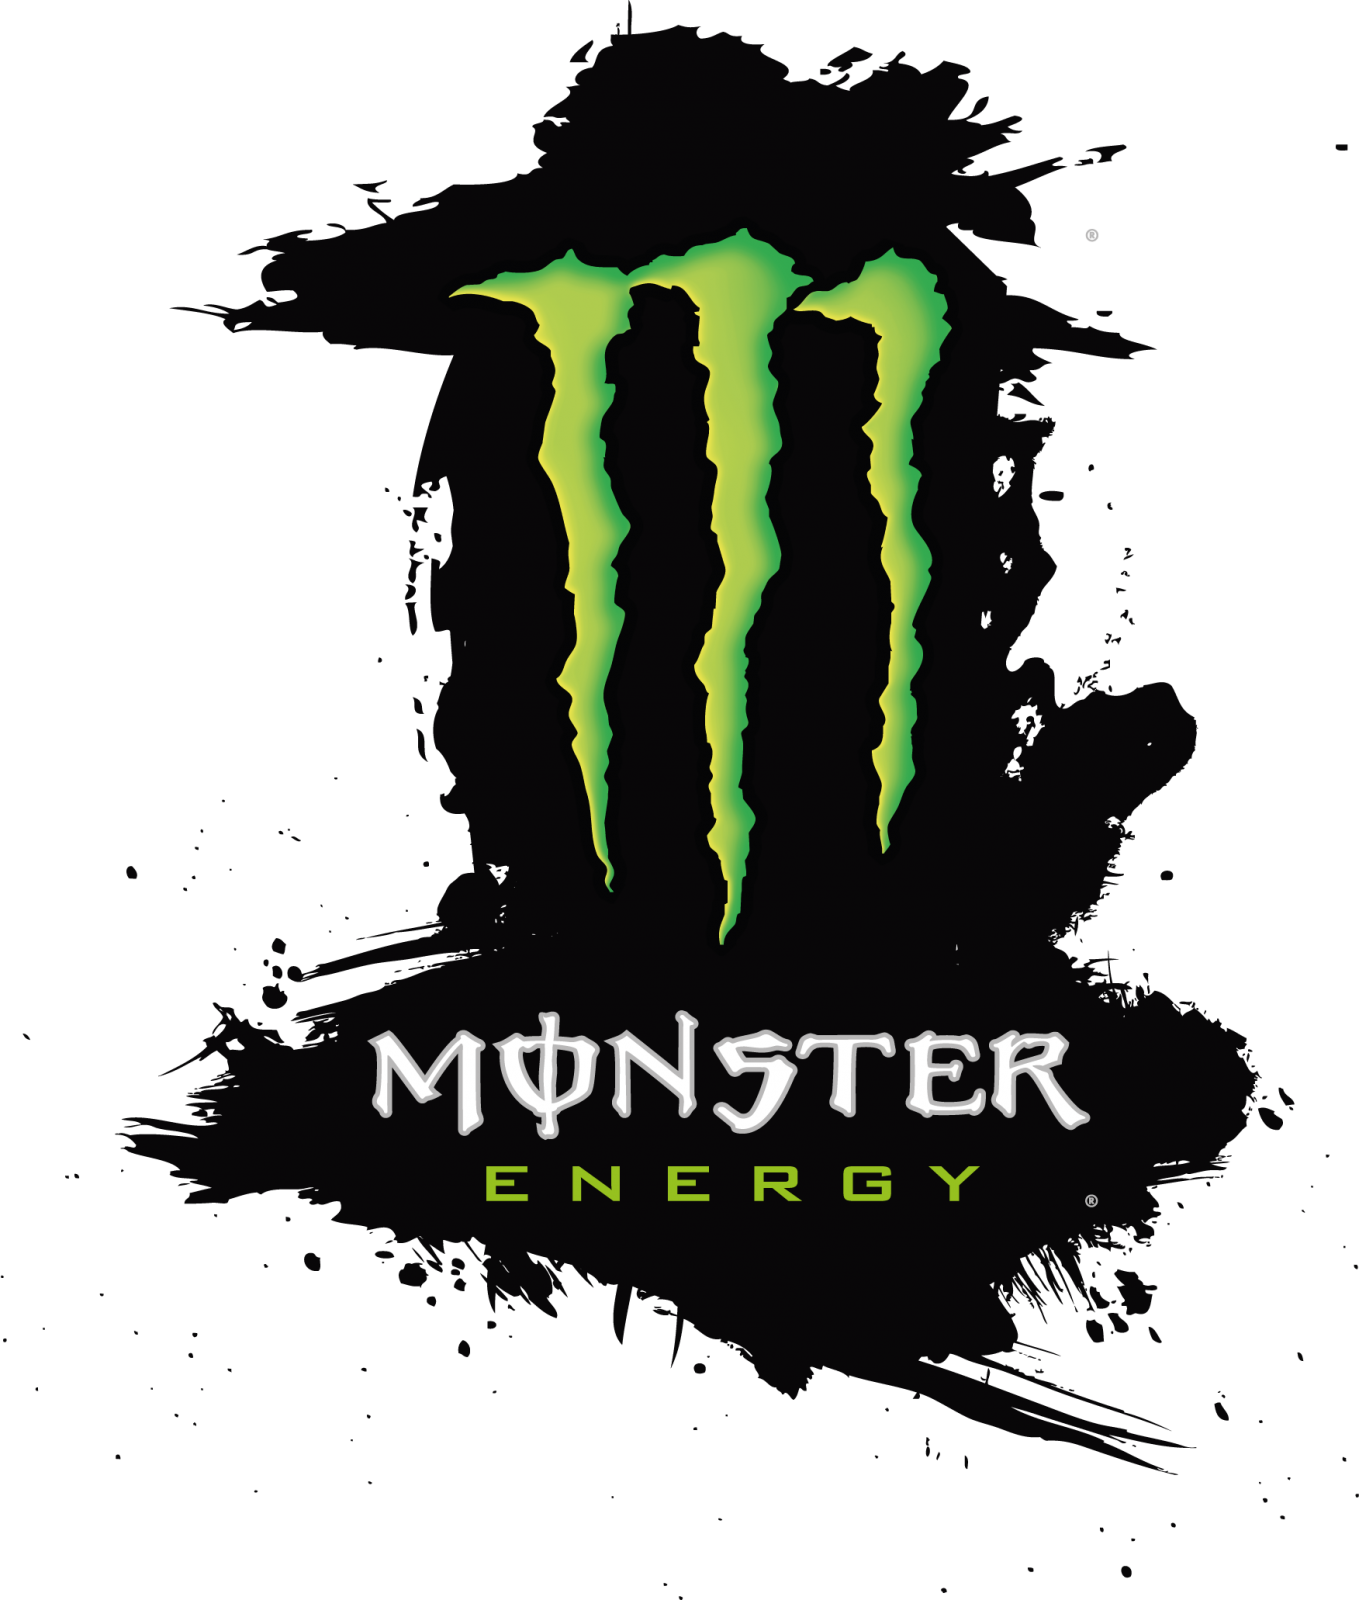 monster png logo symbols #3133